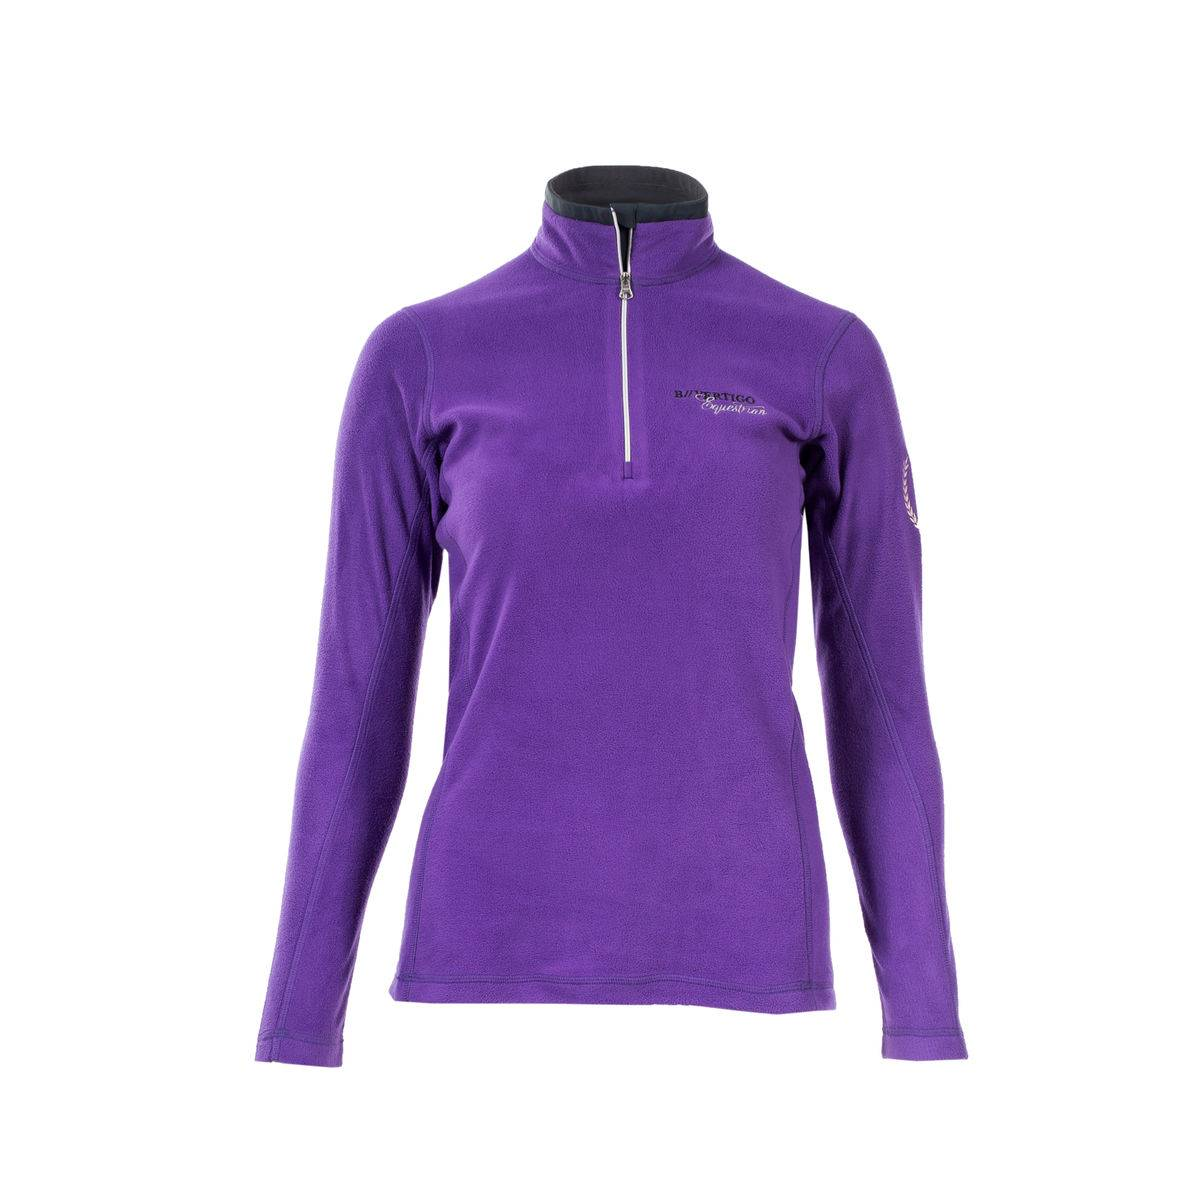 B Vertigo Phillippa Fleece Sweater - Ladies